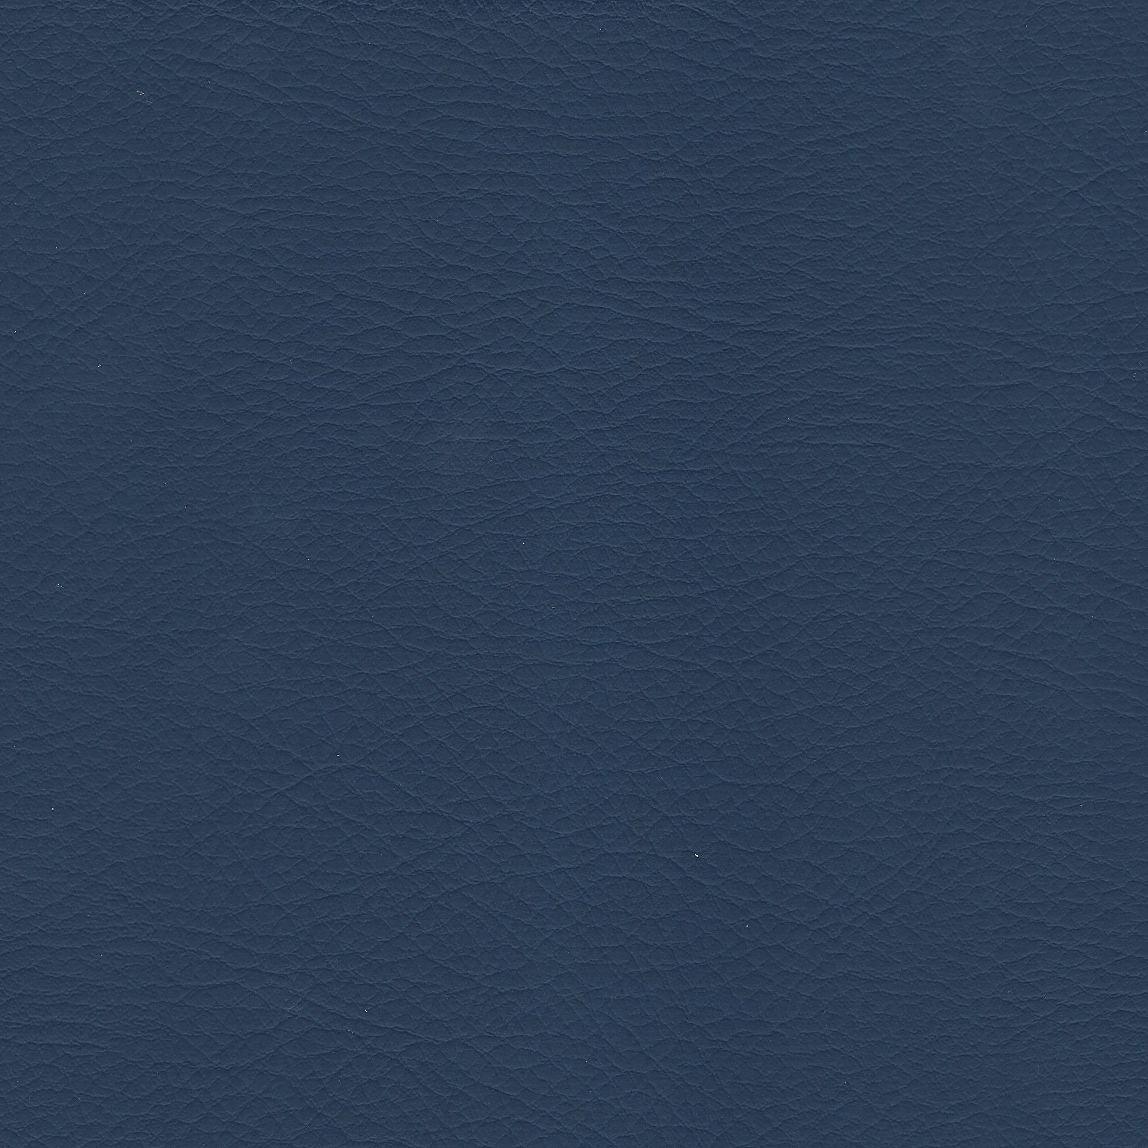 Whisper Vinyl Indigo Swatch